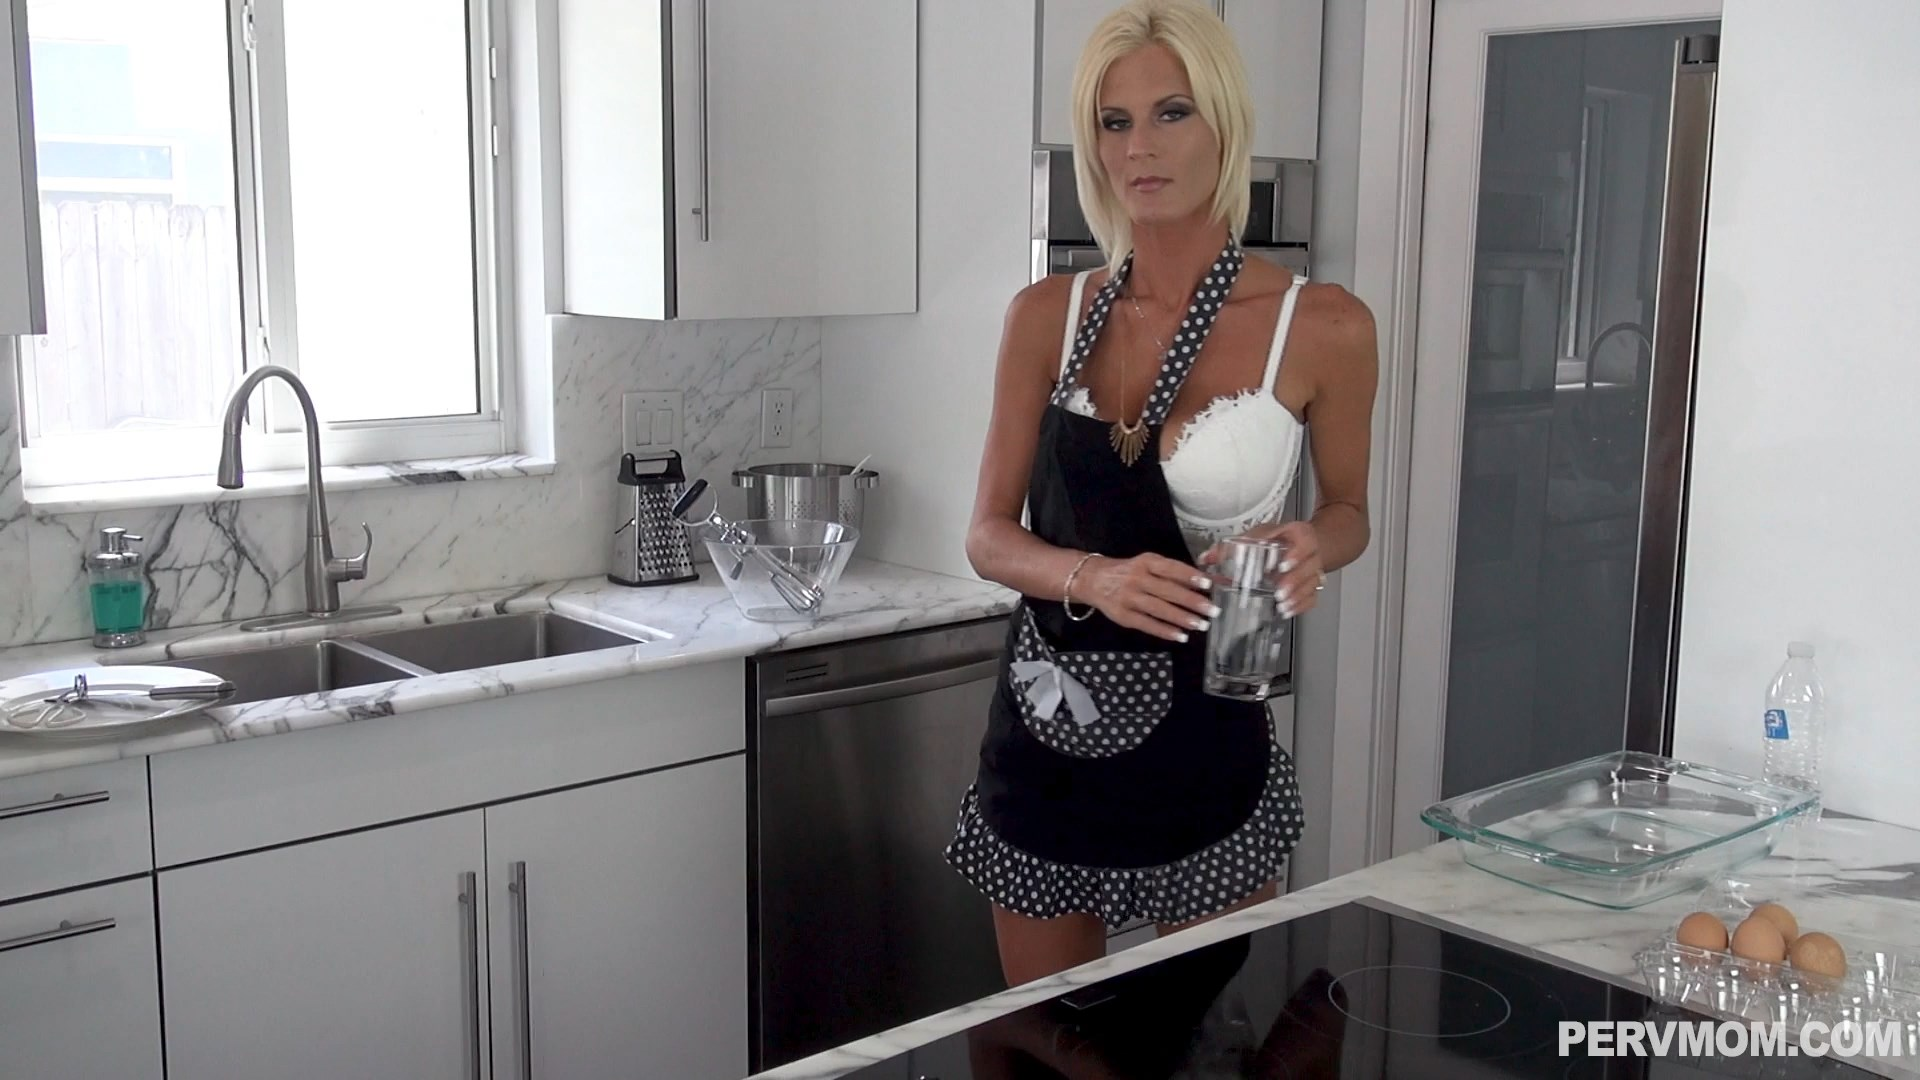 Perv Mom - Stepmoms Tableside Blowjobs - Olivia Blu